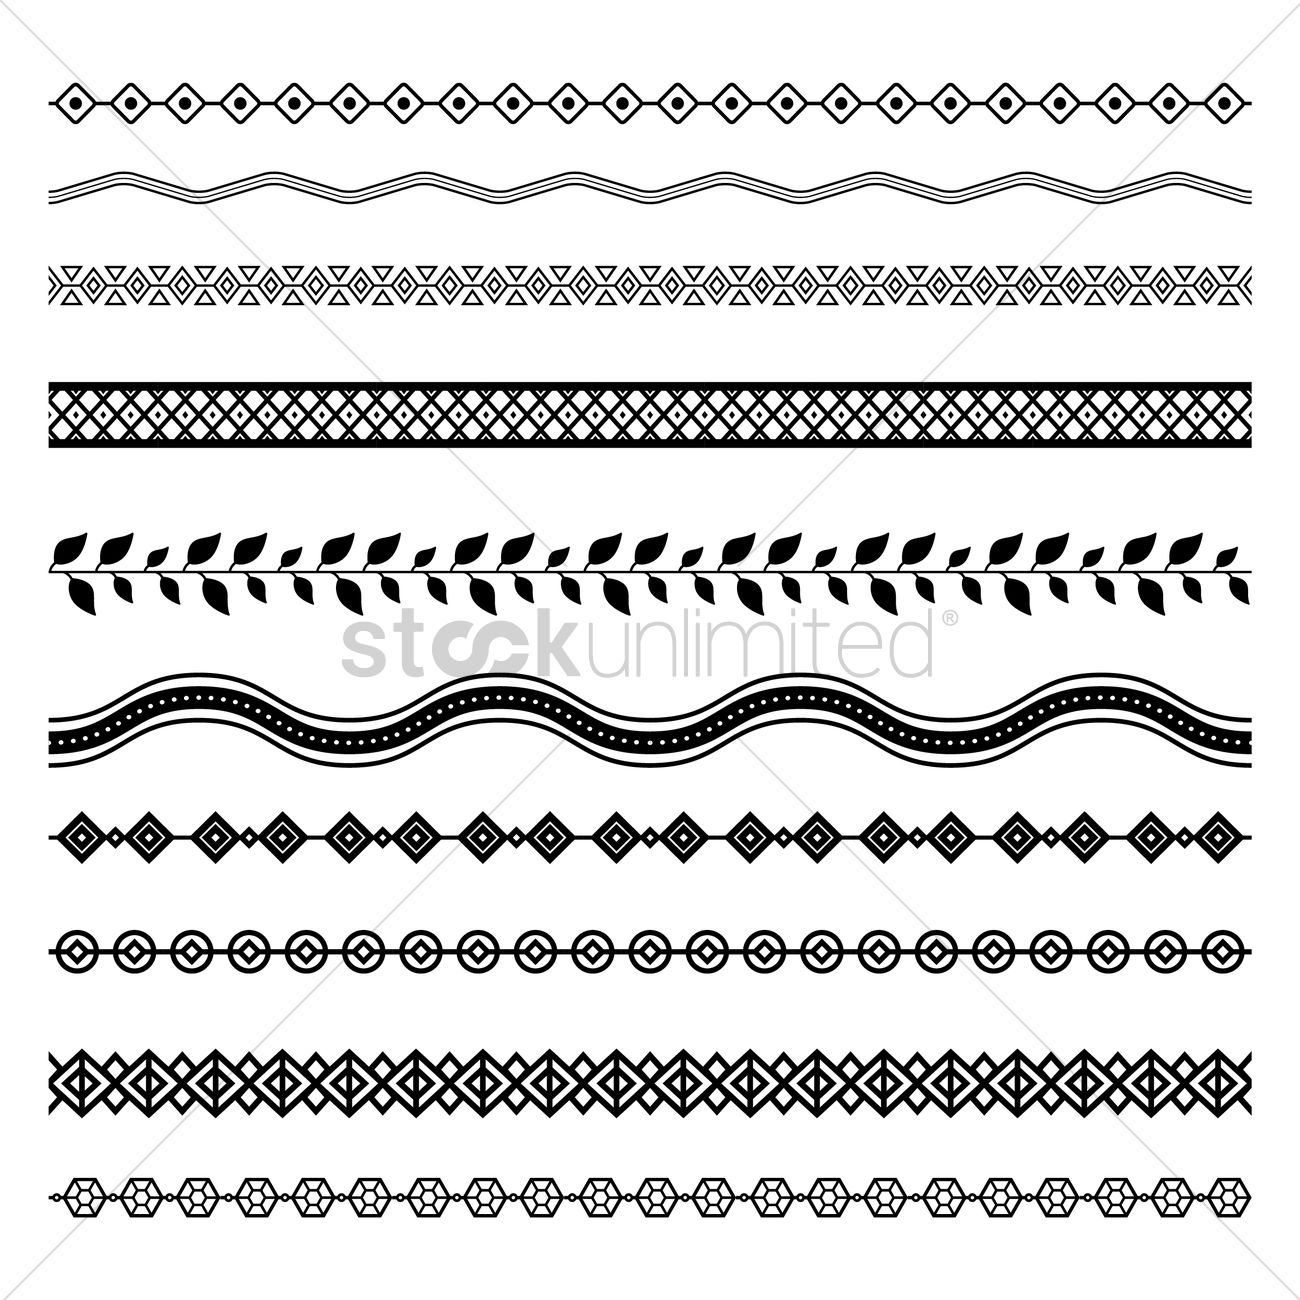 Line Art Border Designs : Set of abstract border designs vector image